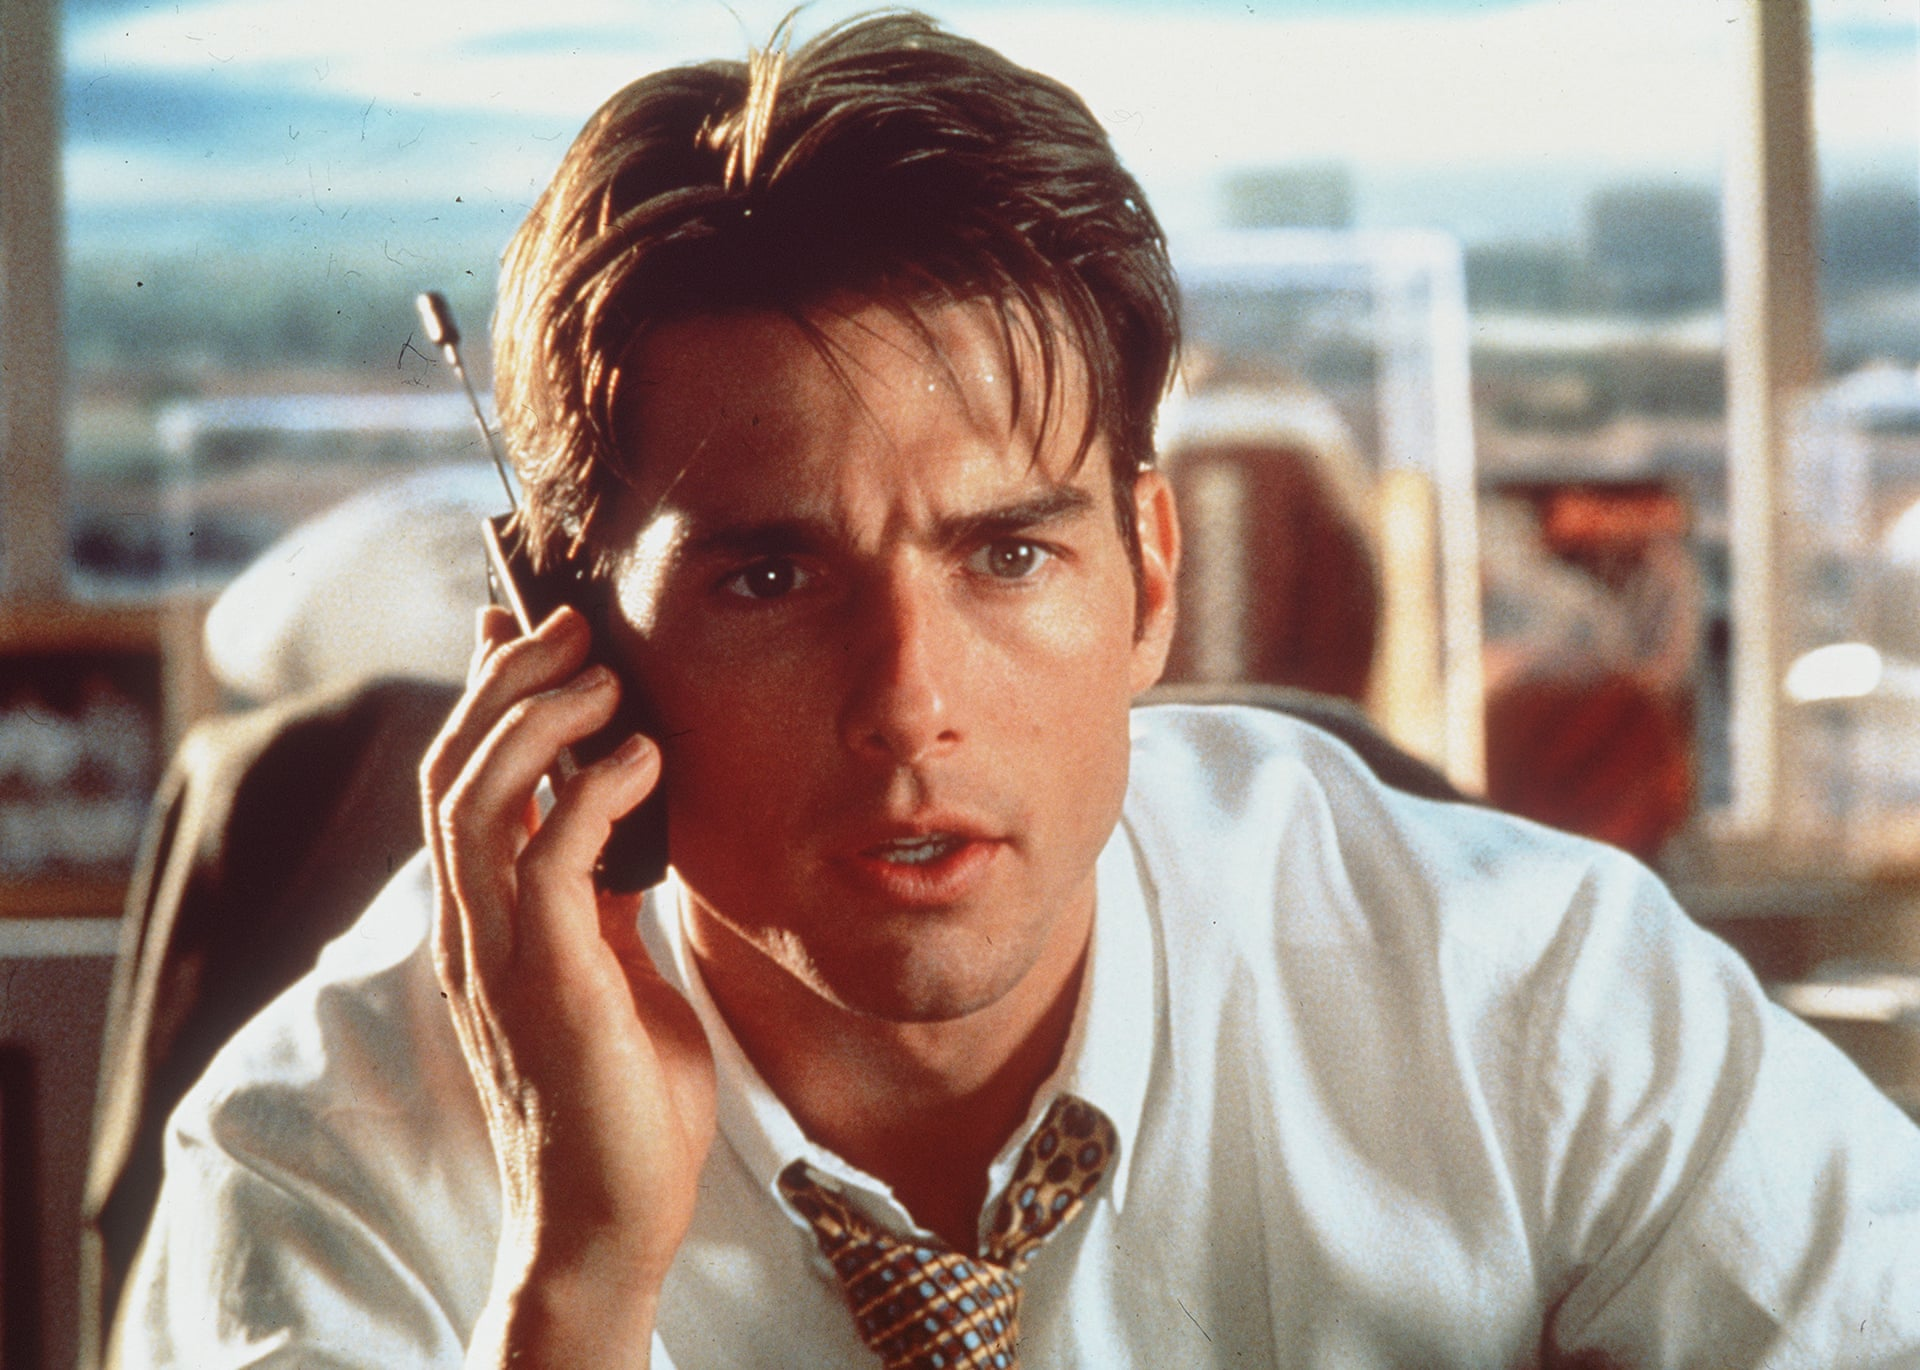 """Show me the money"" - Jerry Maguire"